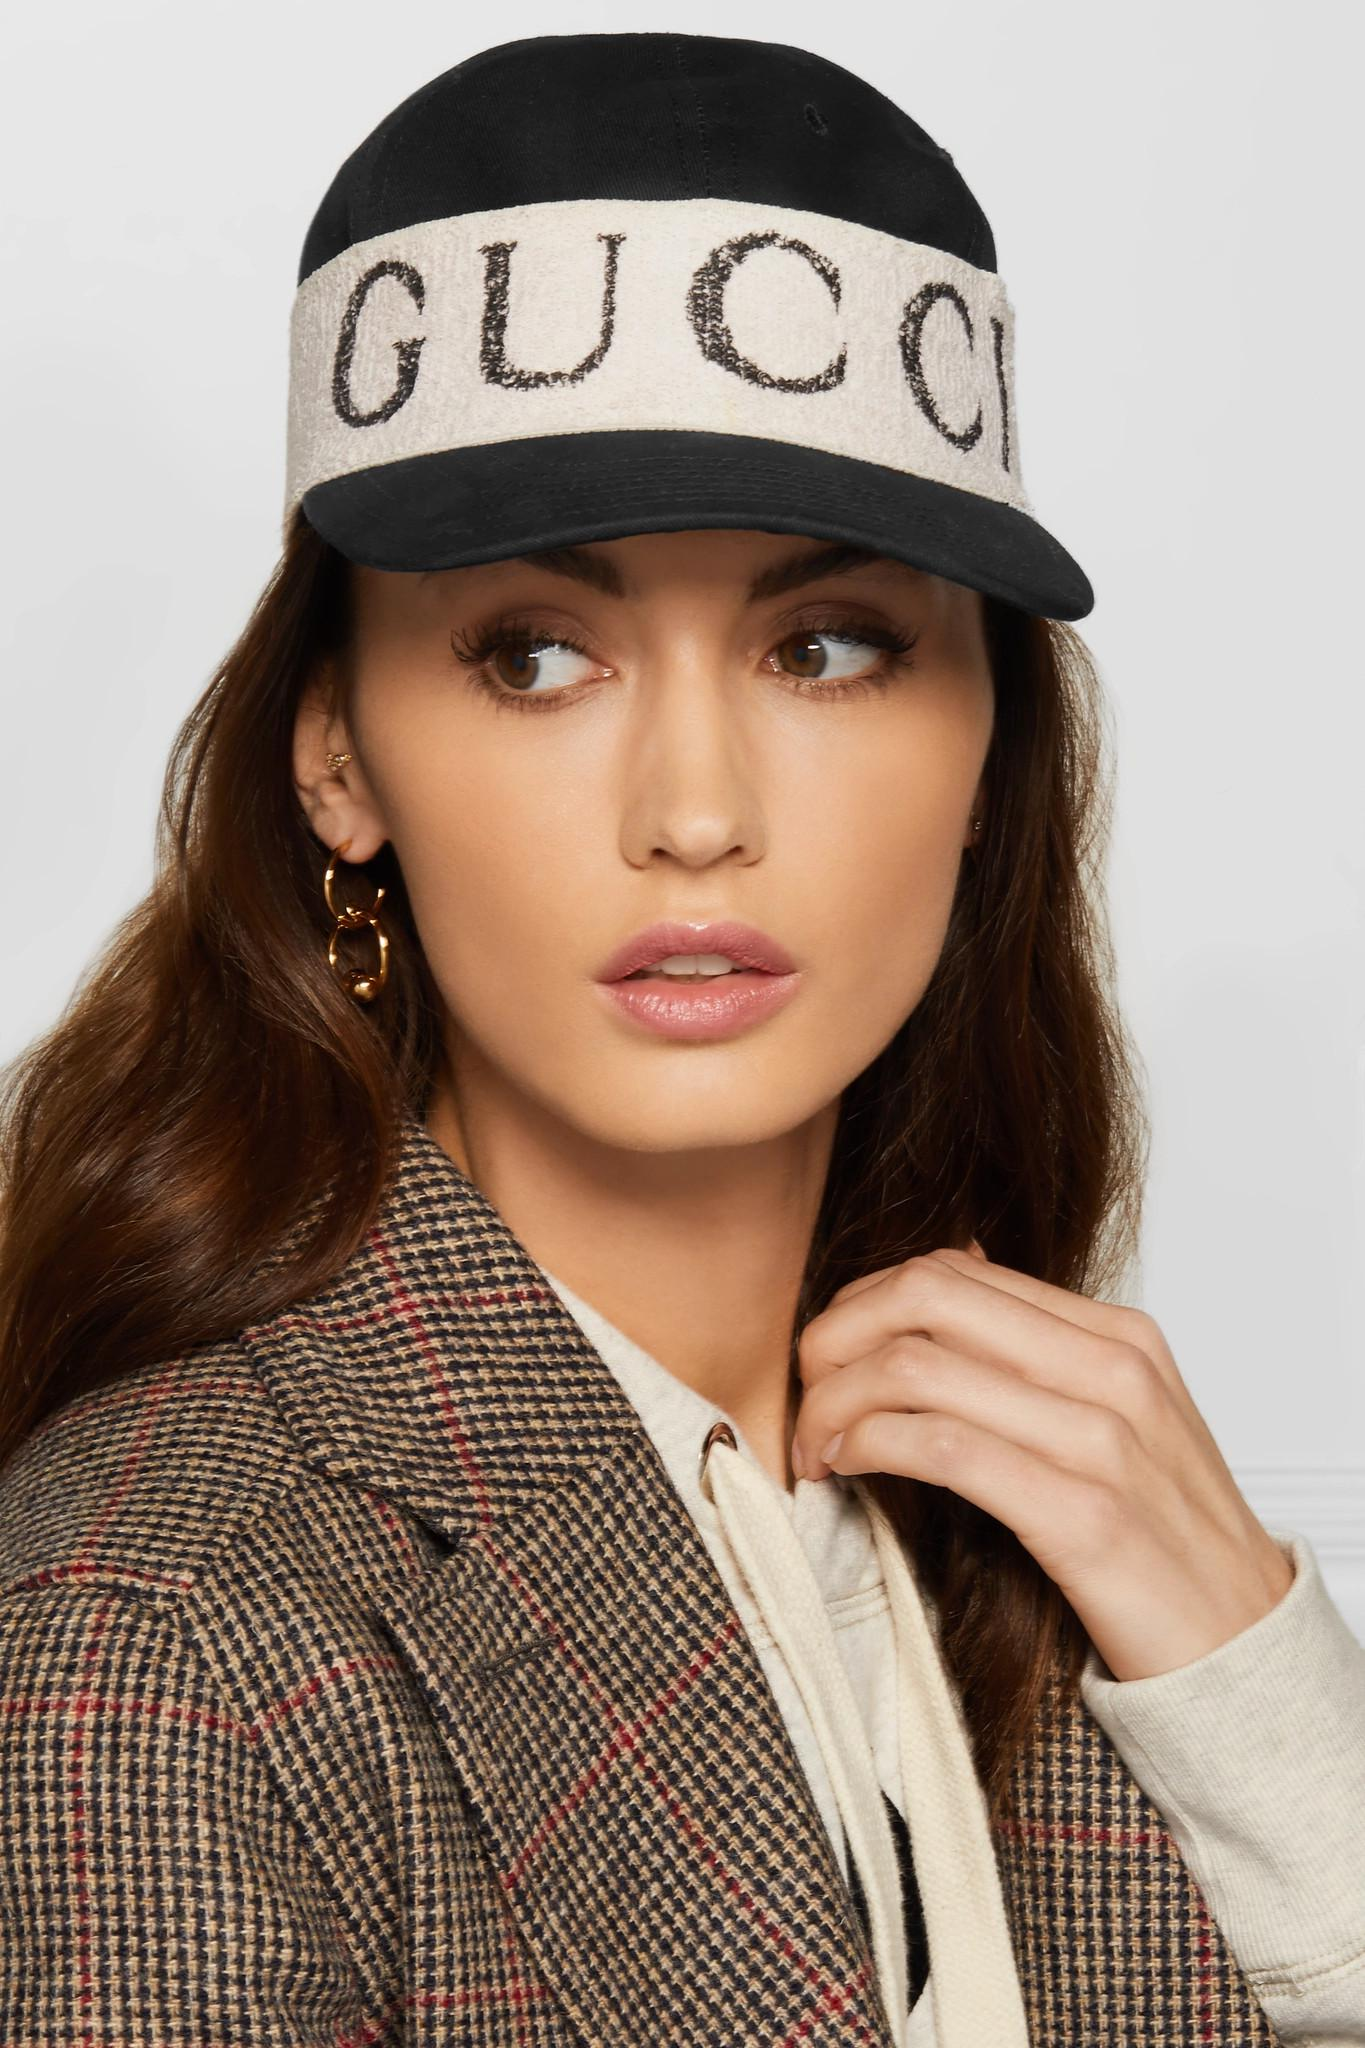 Lyst - Gucci Cotton-twill And Printed Terry Baseball Cap in Black 080d379a5f8